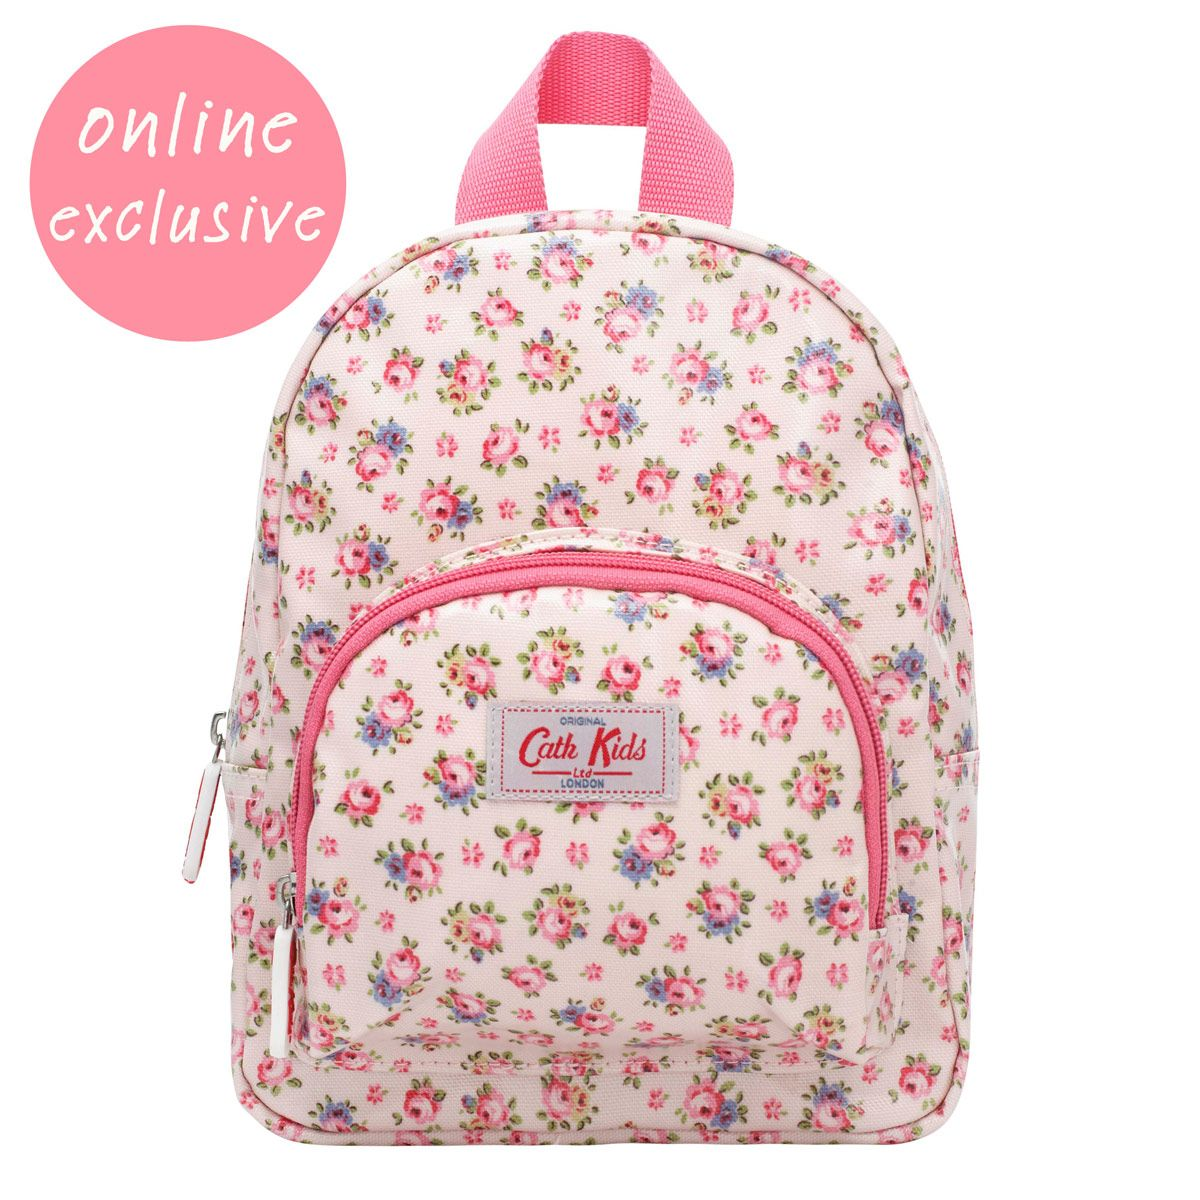 b56ce4214e Cath Kidston Toddler Back Pack - Travelling with Kids - Childrens Bags